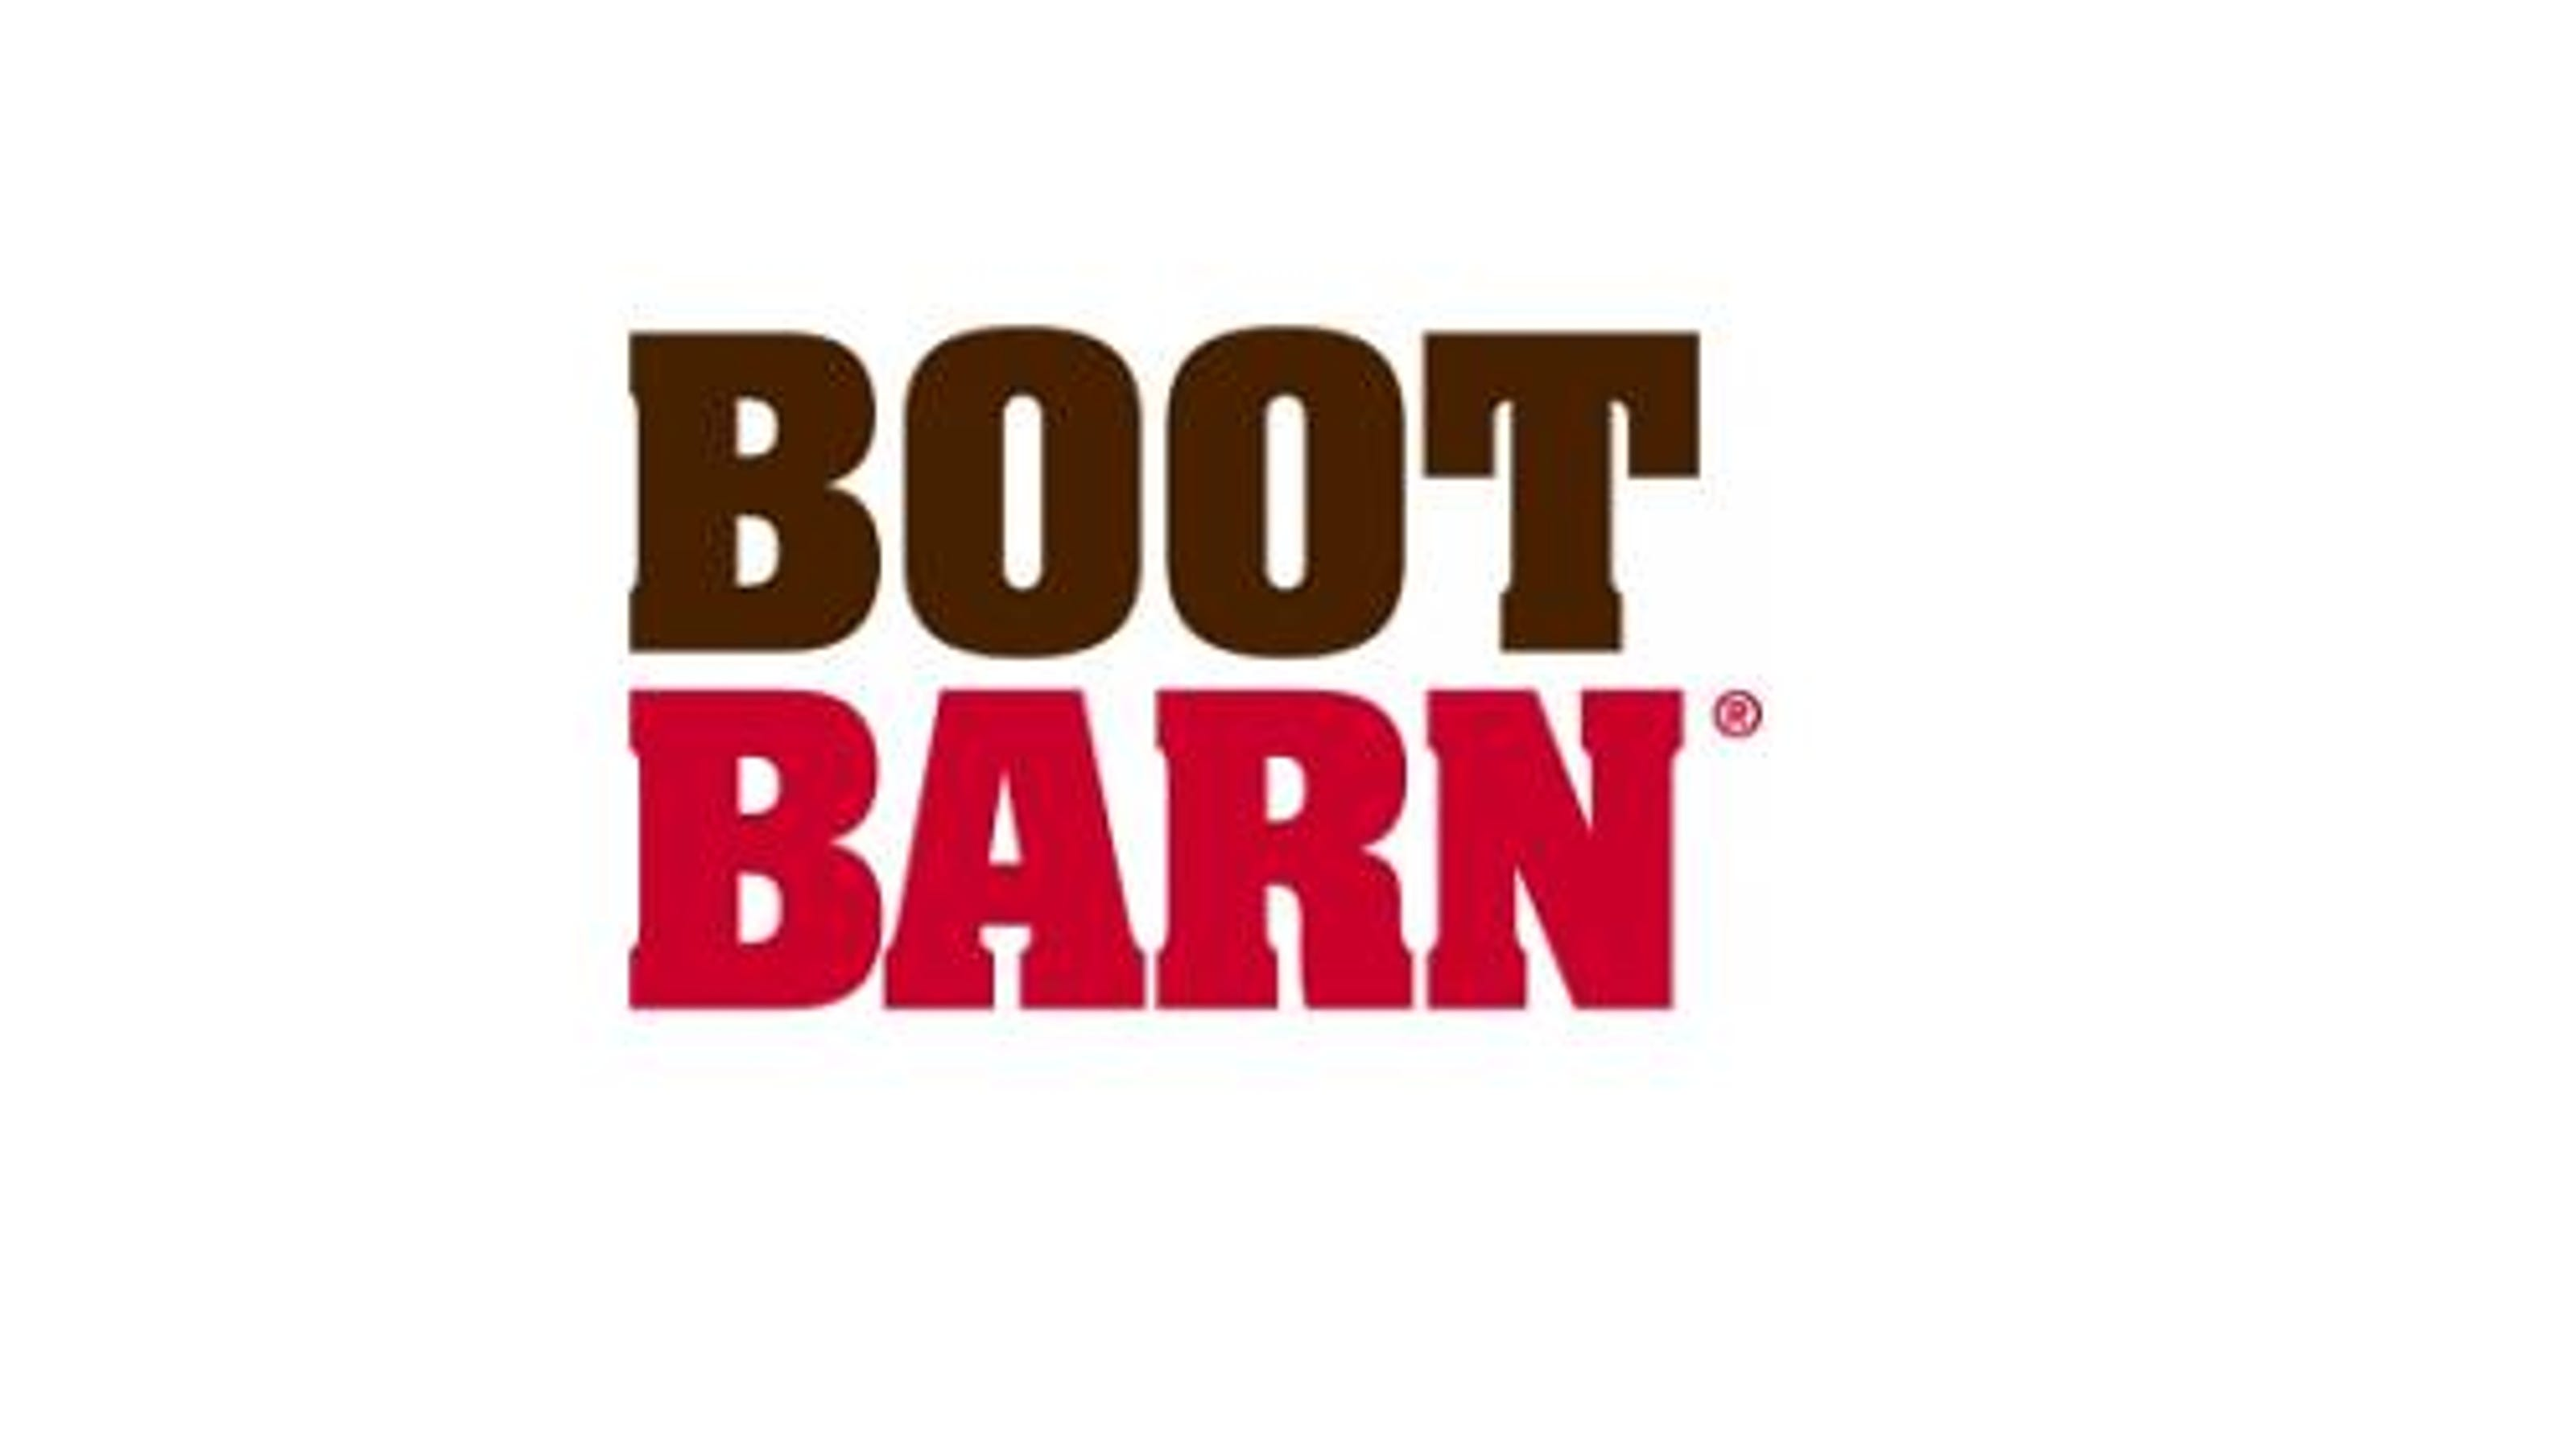 Lower Broadway Boot Barn building bought for $5.5M